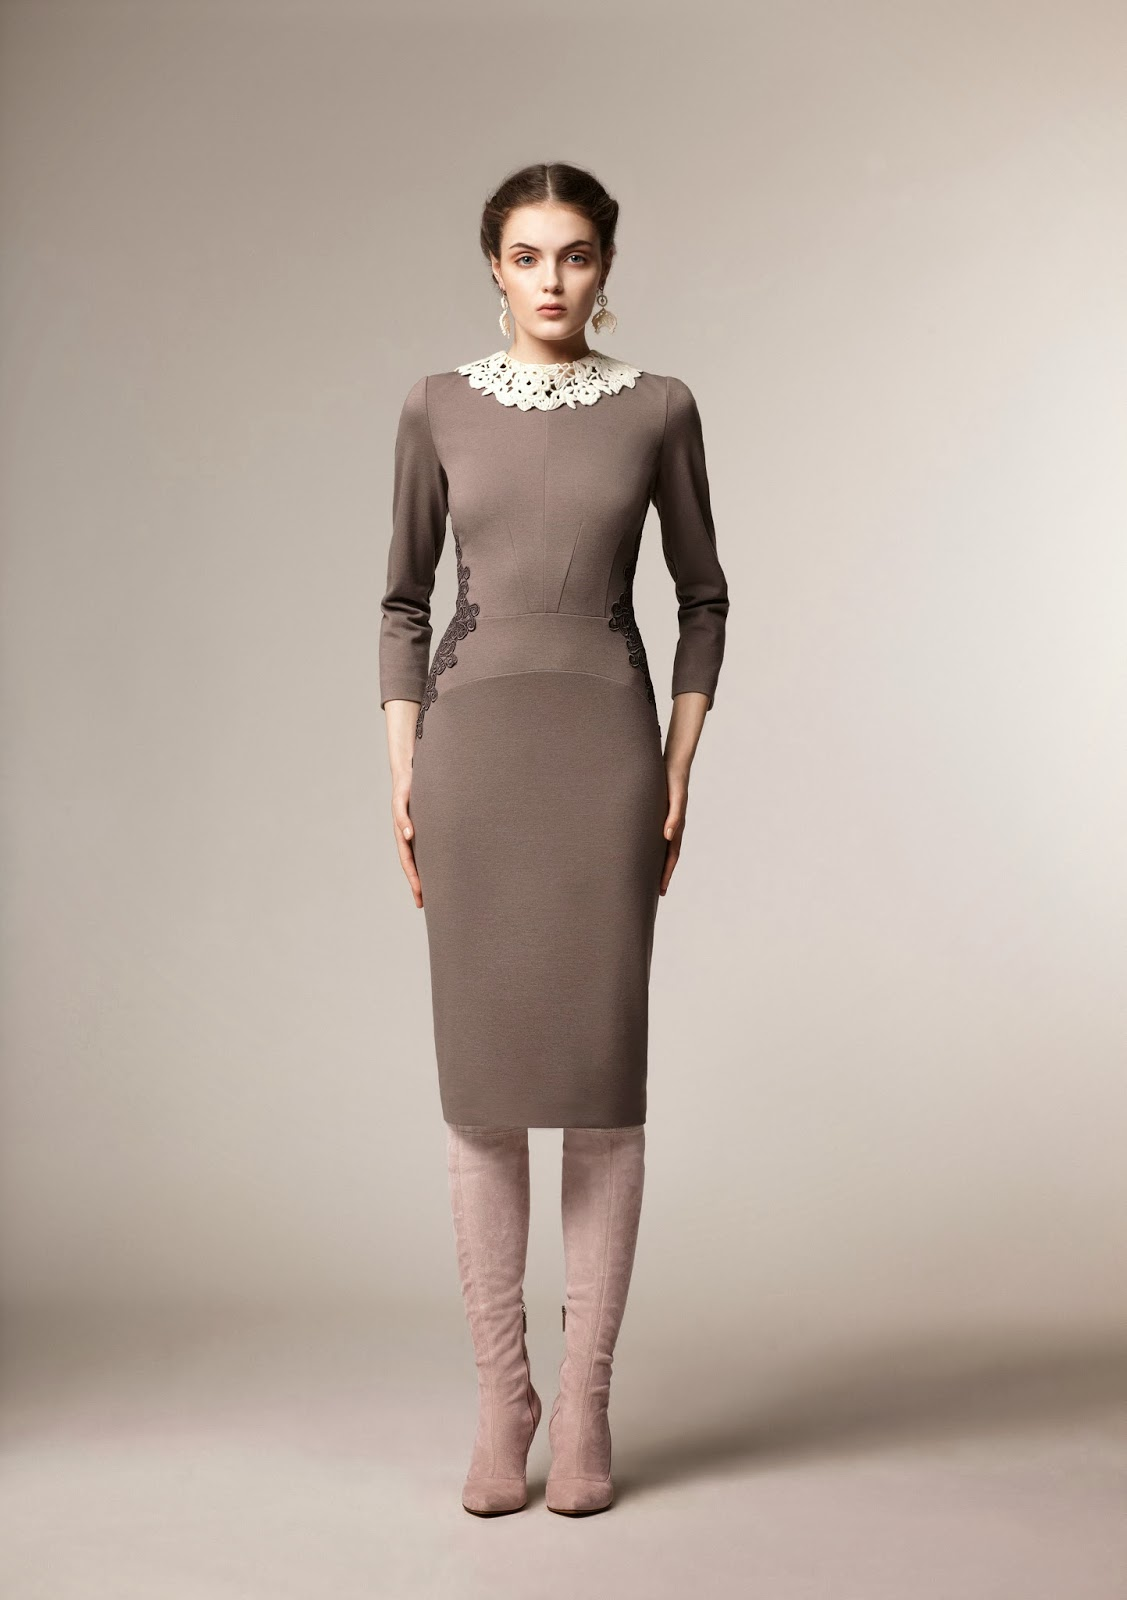 Modest gray bodycon midi dress with long sleeves at Mode-sty